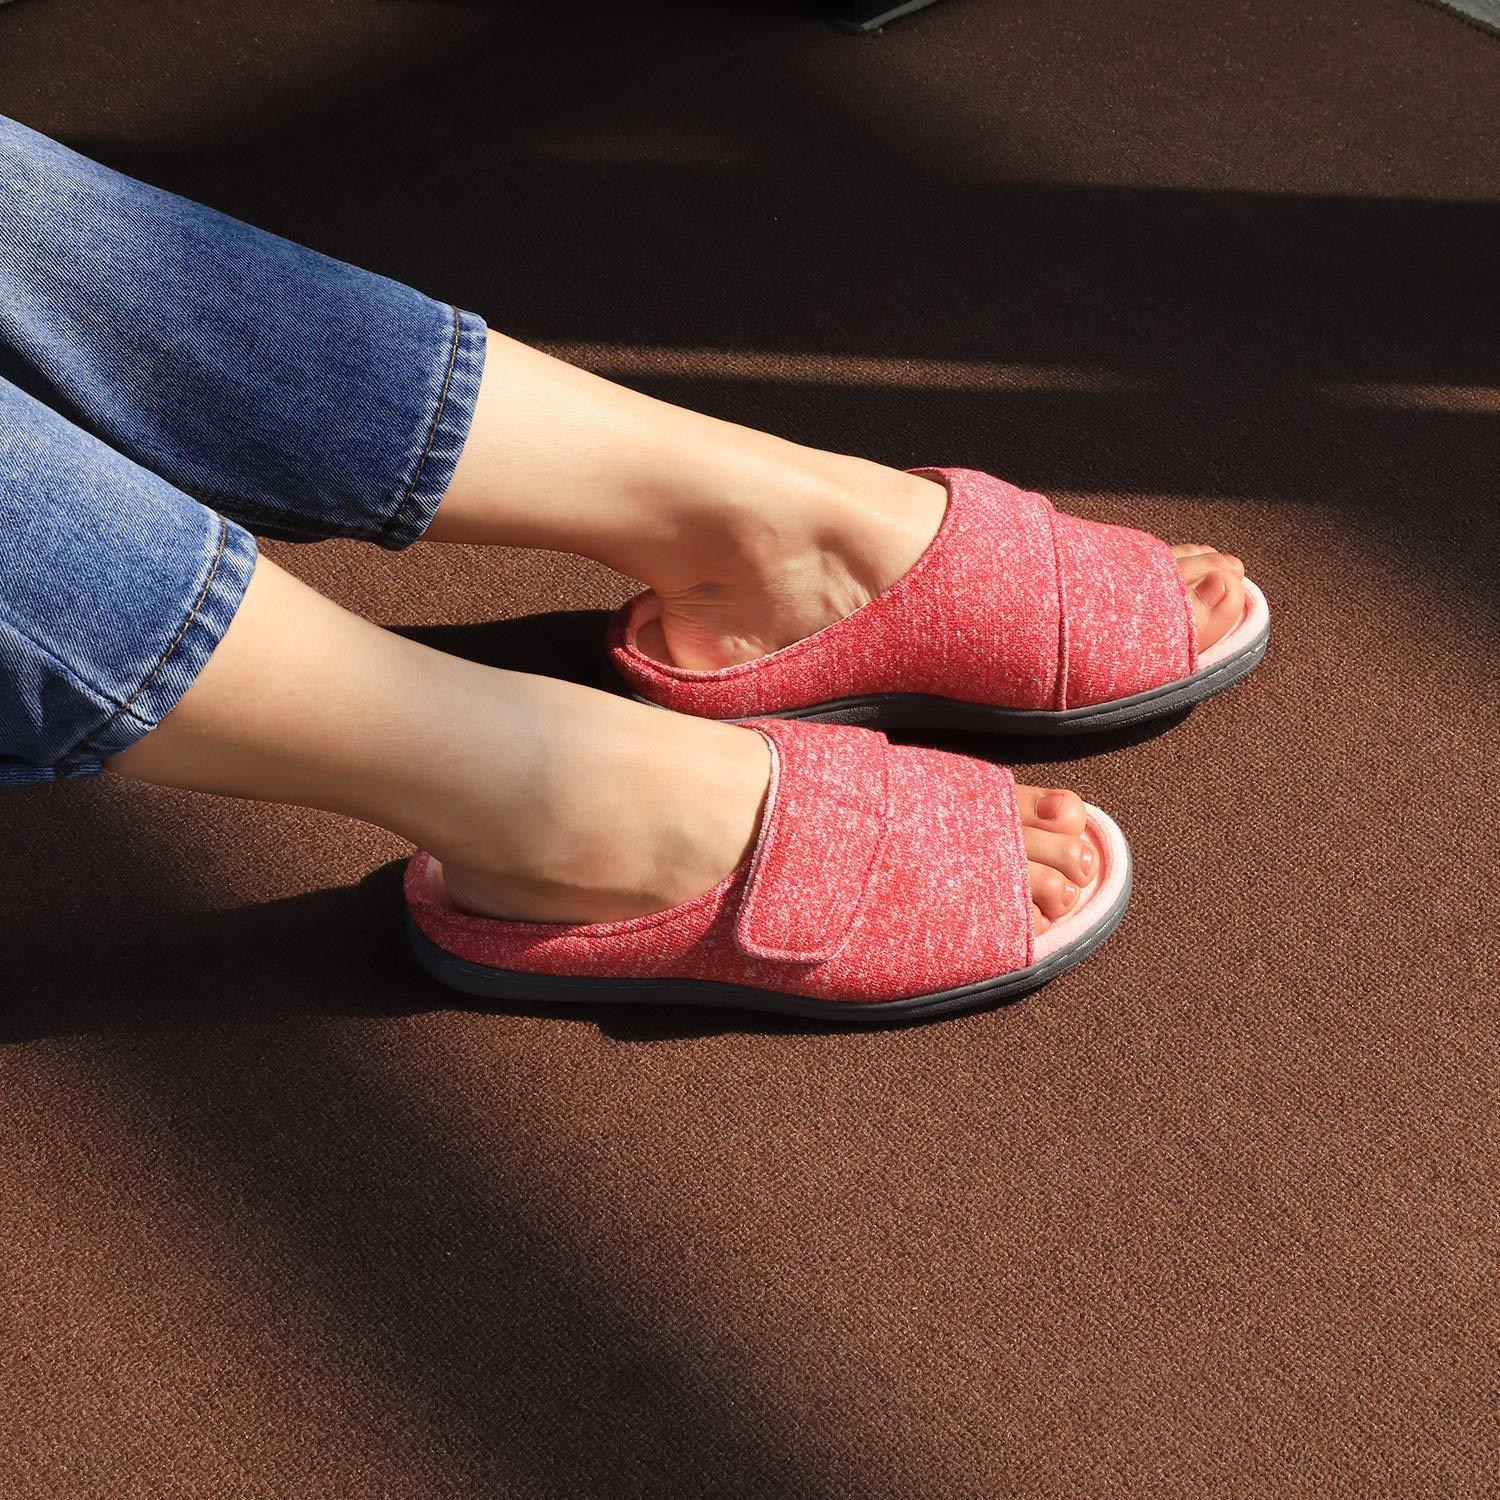 VeraCosy open toe slippers